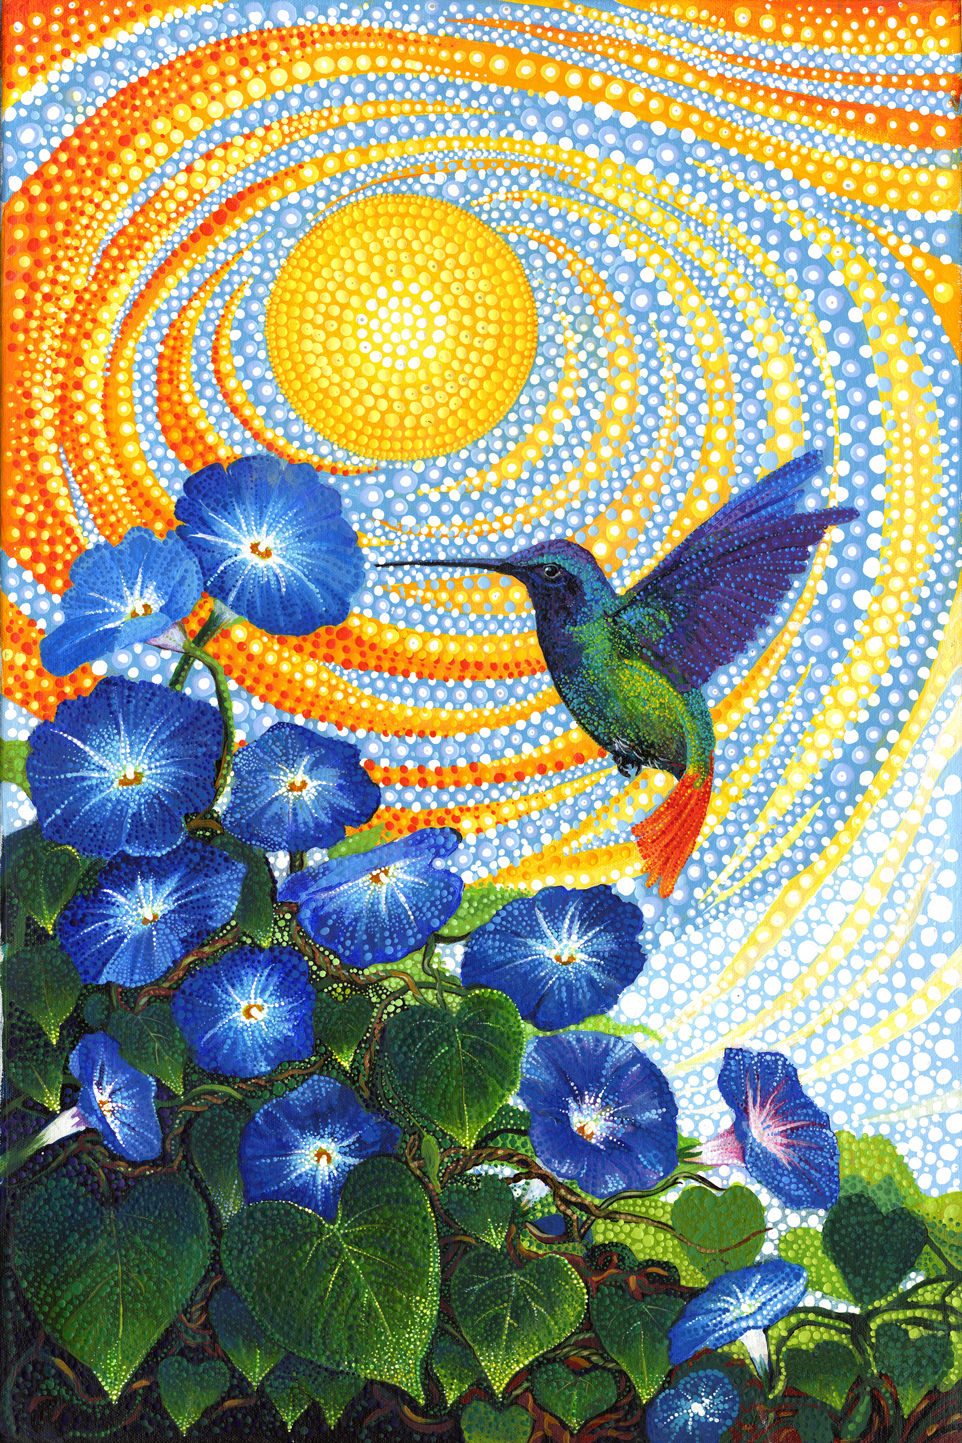 Dreamscapes Digital Morning Glory PANEL